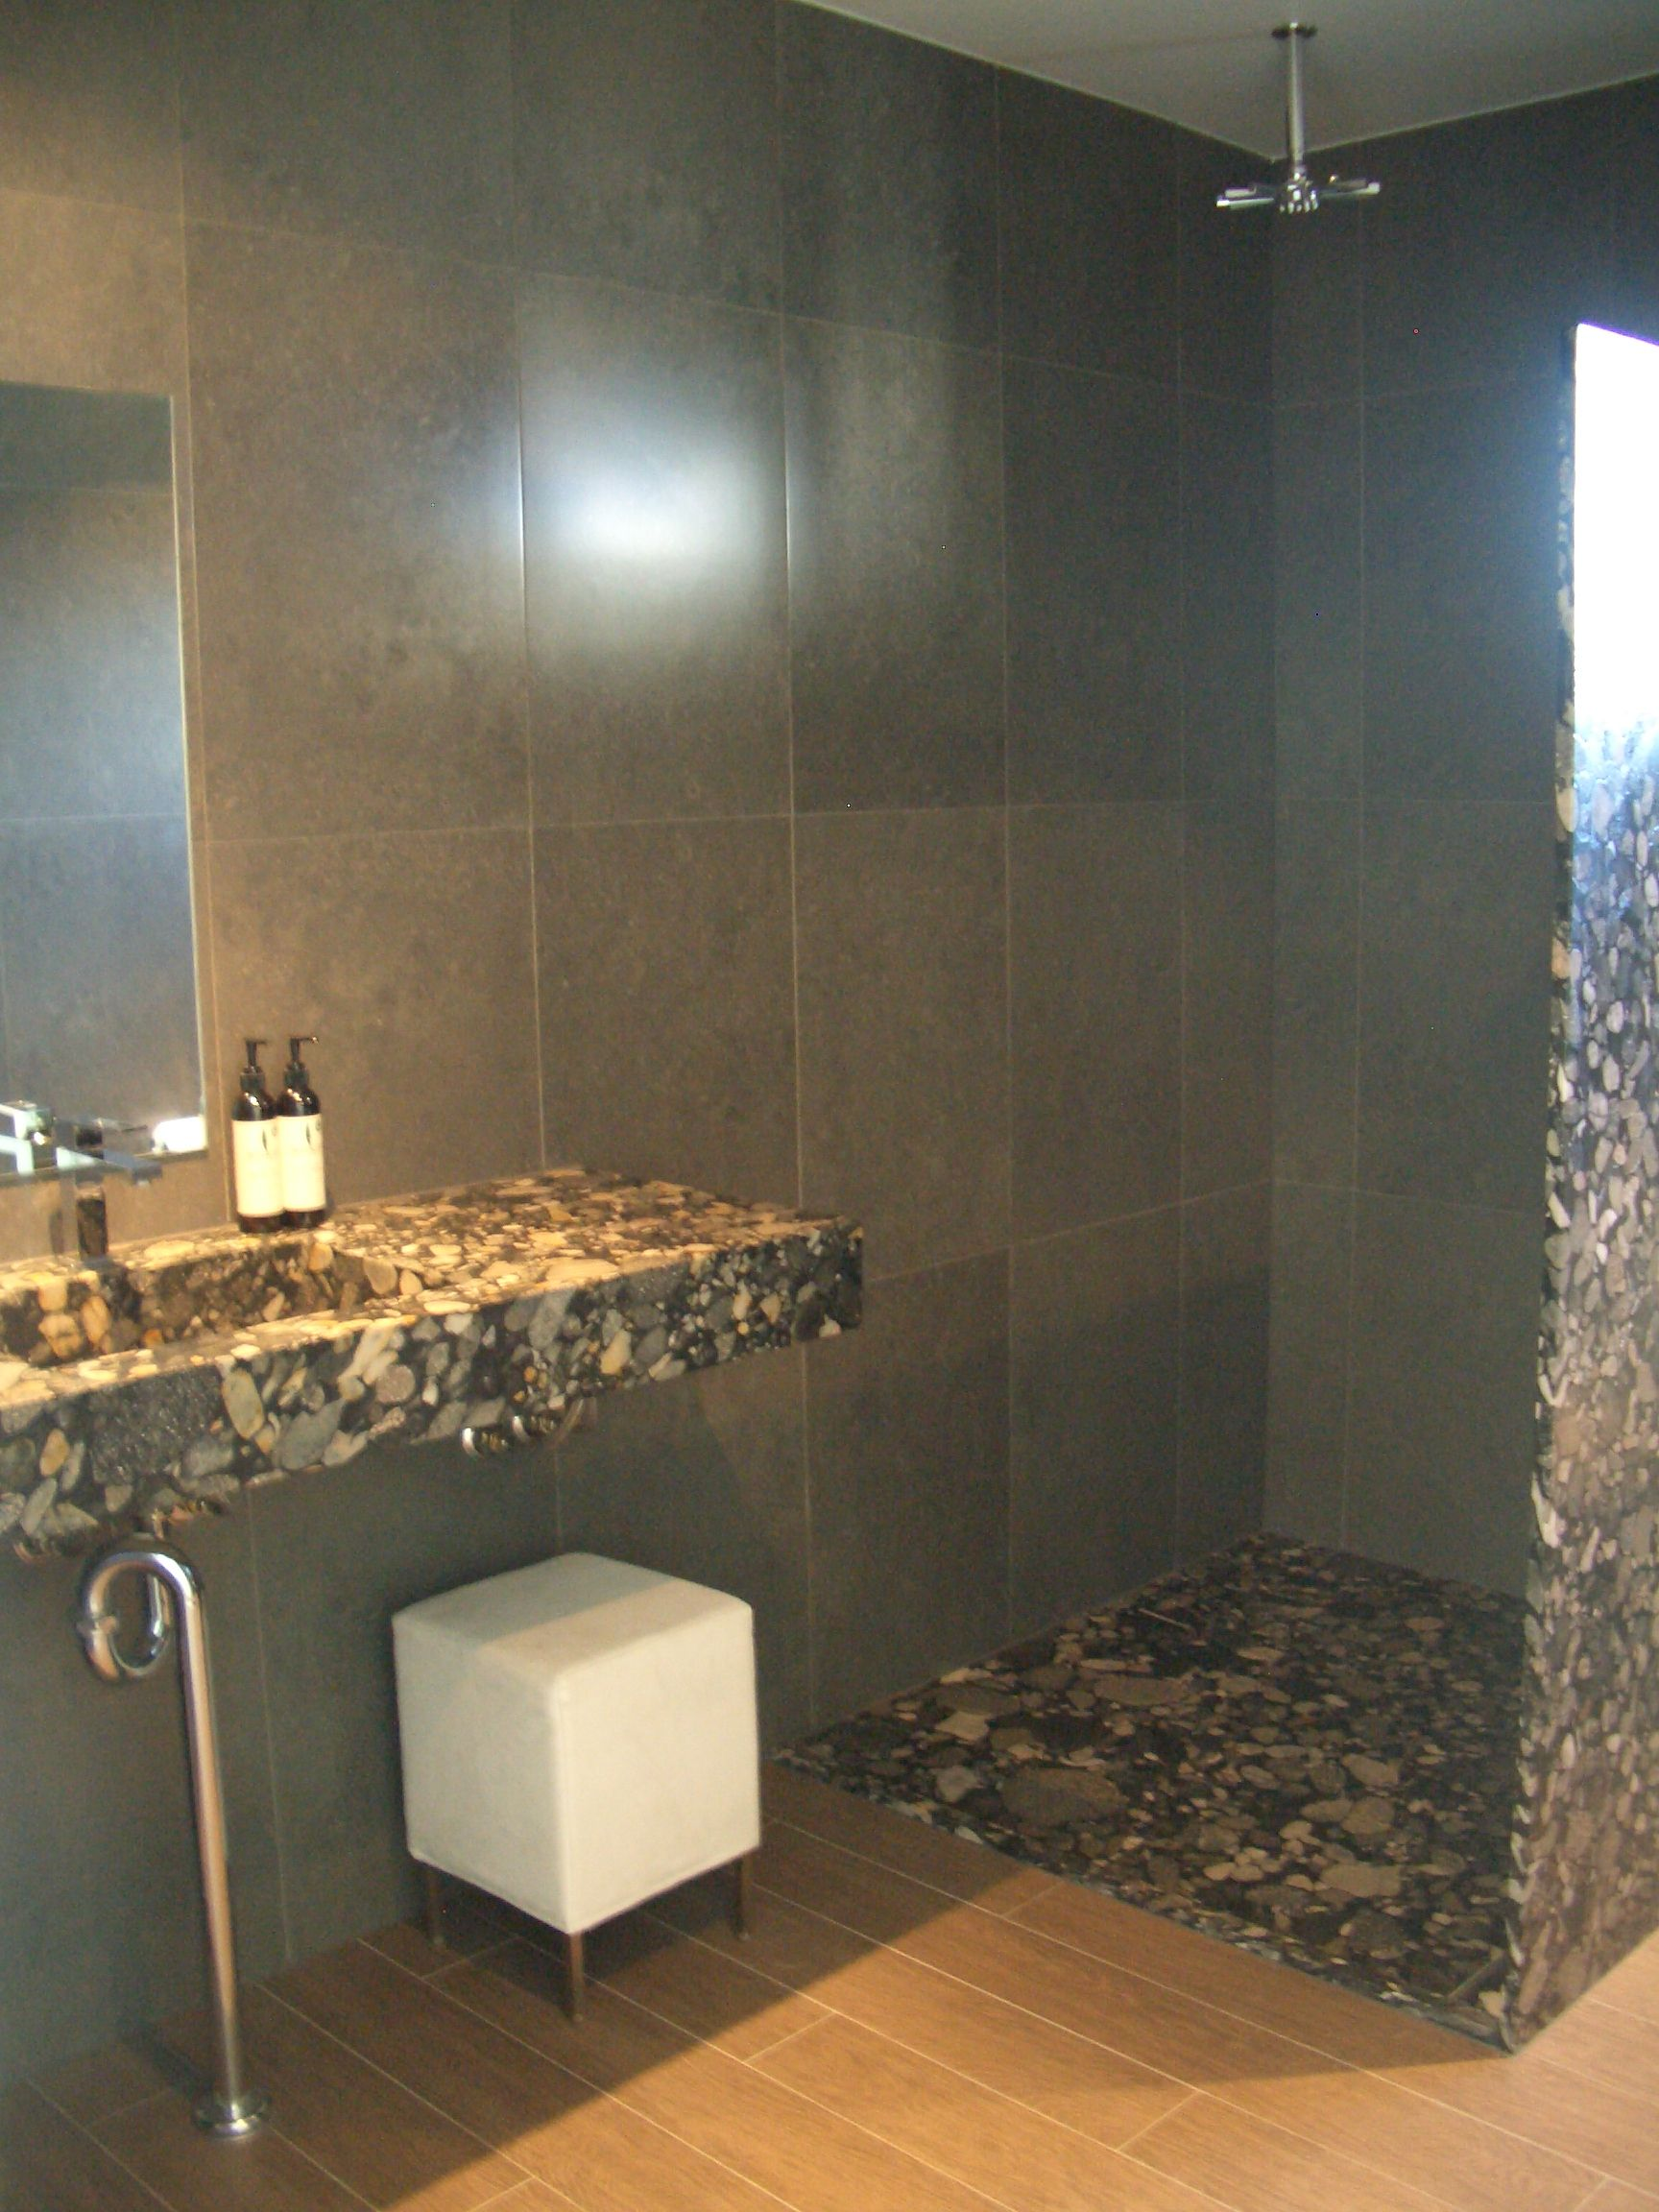 Black Marinace Granite Vanity Shower Floor And Wall Timber Look Porcelain Tiles On Floor And Porcelain Tiles On Wall Granite Vanity Shower Floor House Design